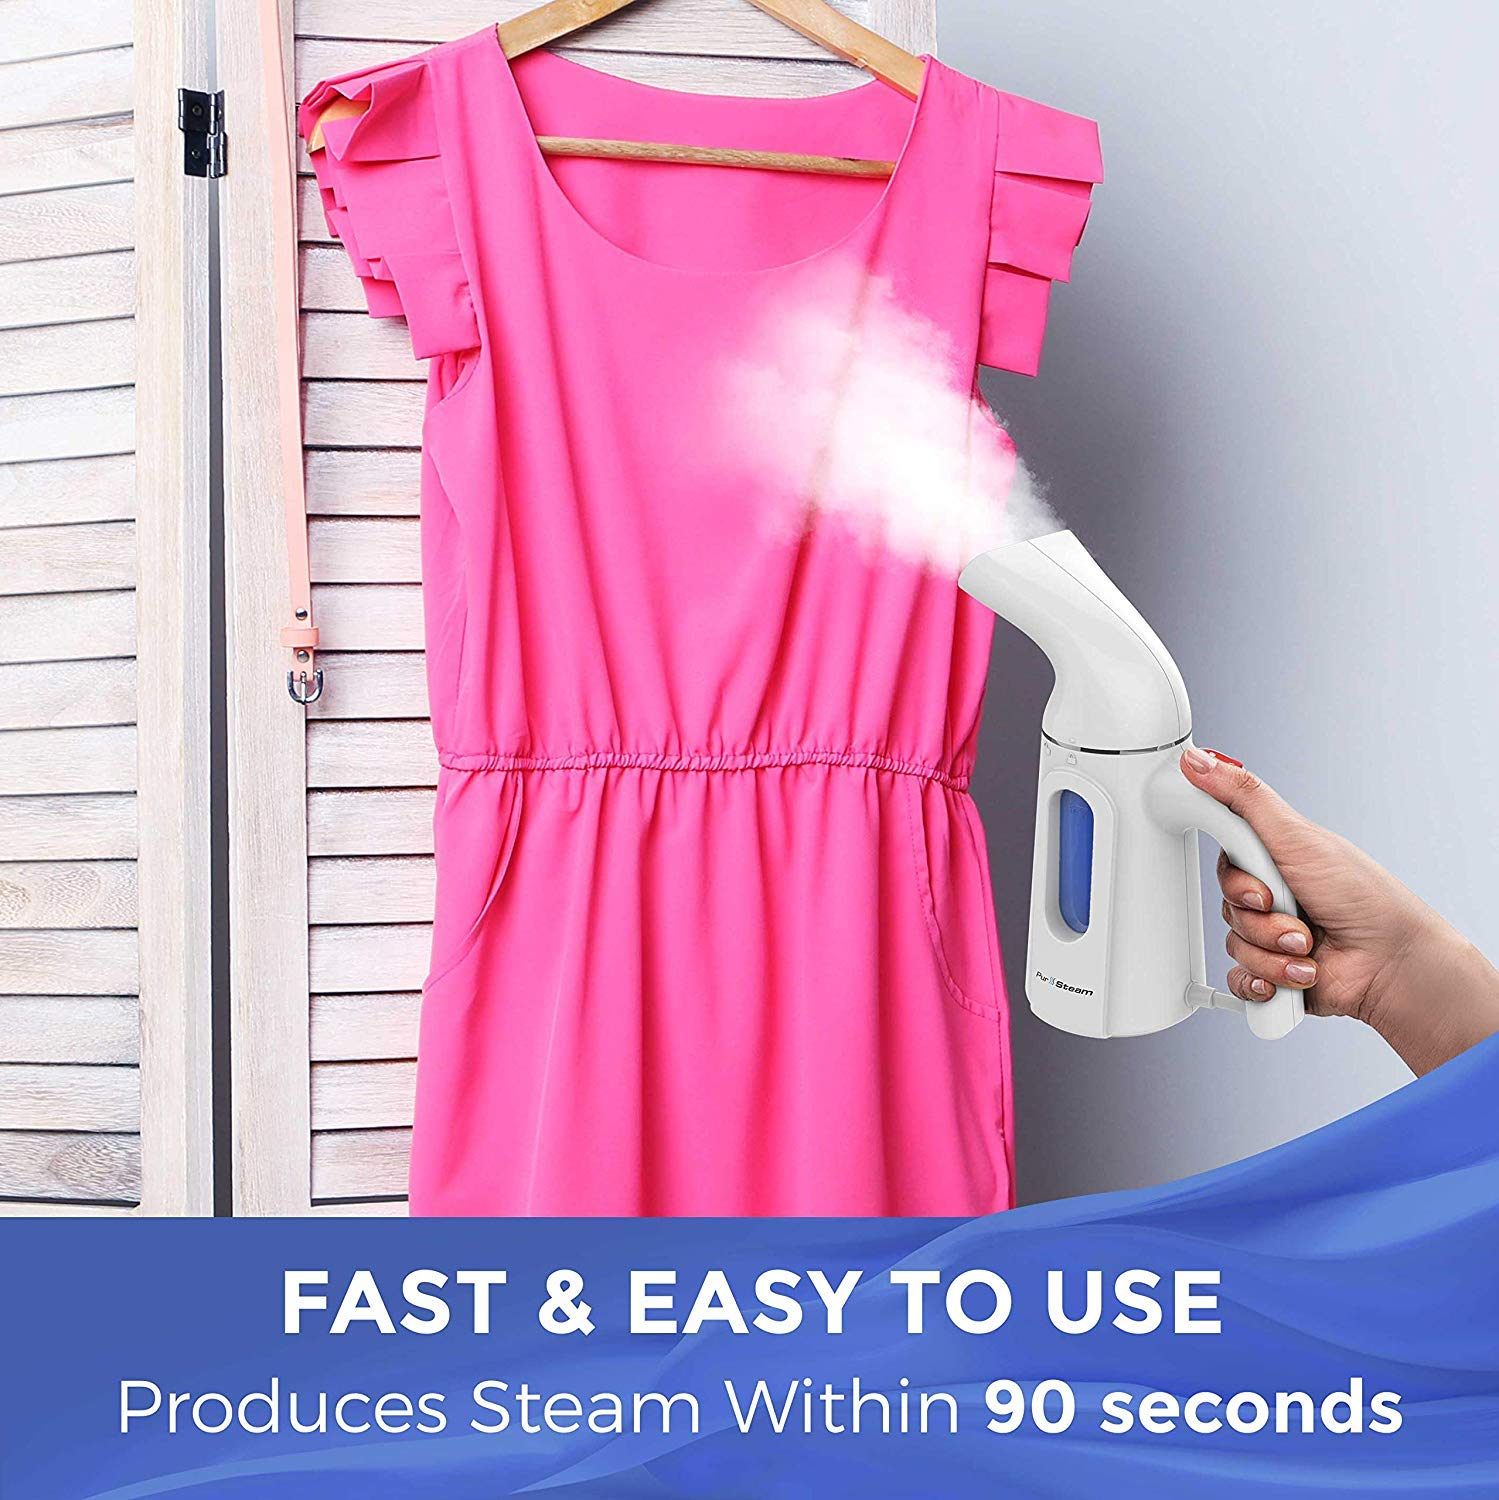 PurSteam Travel Steamer for Clothes. Highest Quality, Fastest Heating InfaTherm Technology , 8-in-1, Wrinkle Remover- Clean- Sterilize-Refresh- Treat-, Auto Off by PurSteam World's Best Steamers (Image #4)